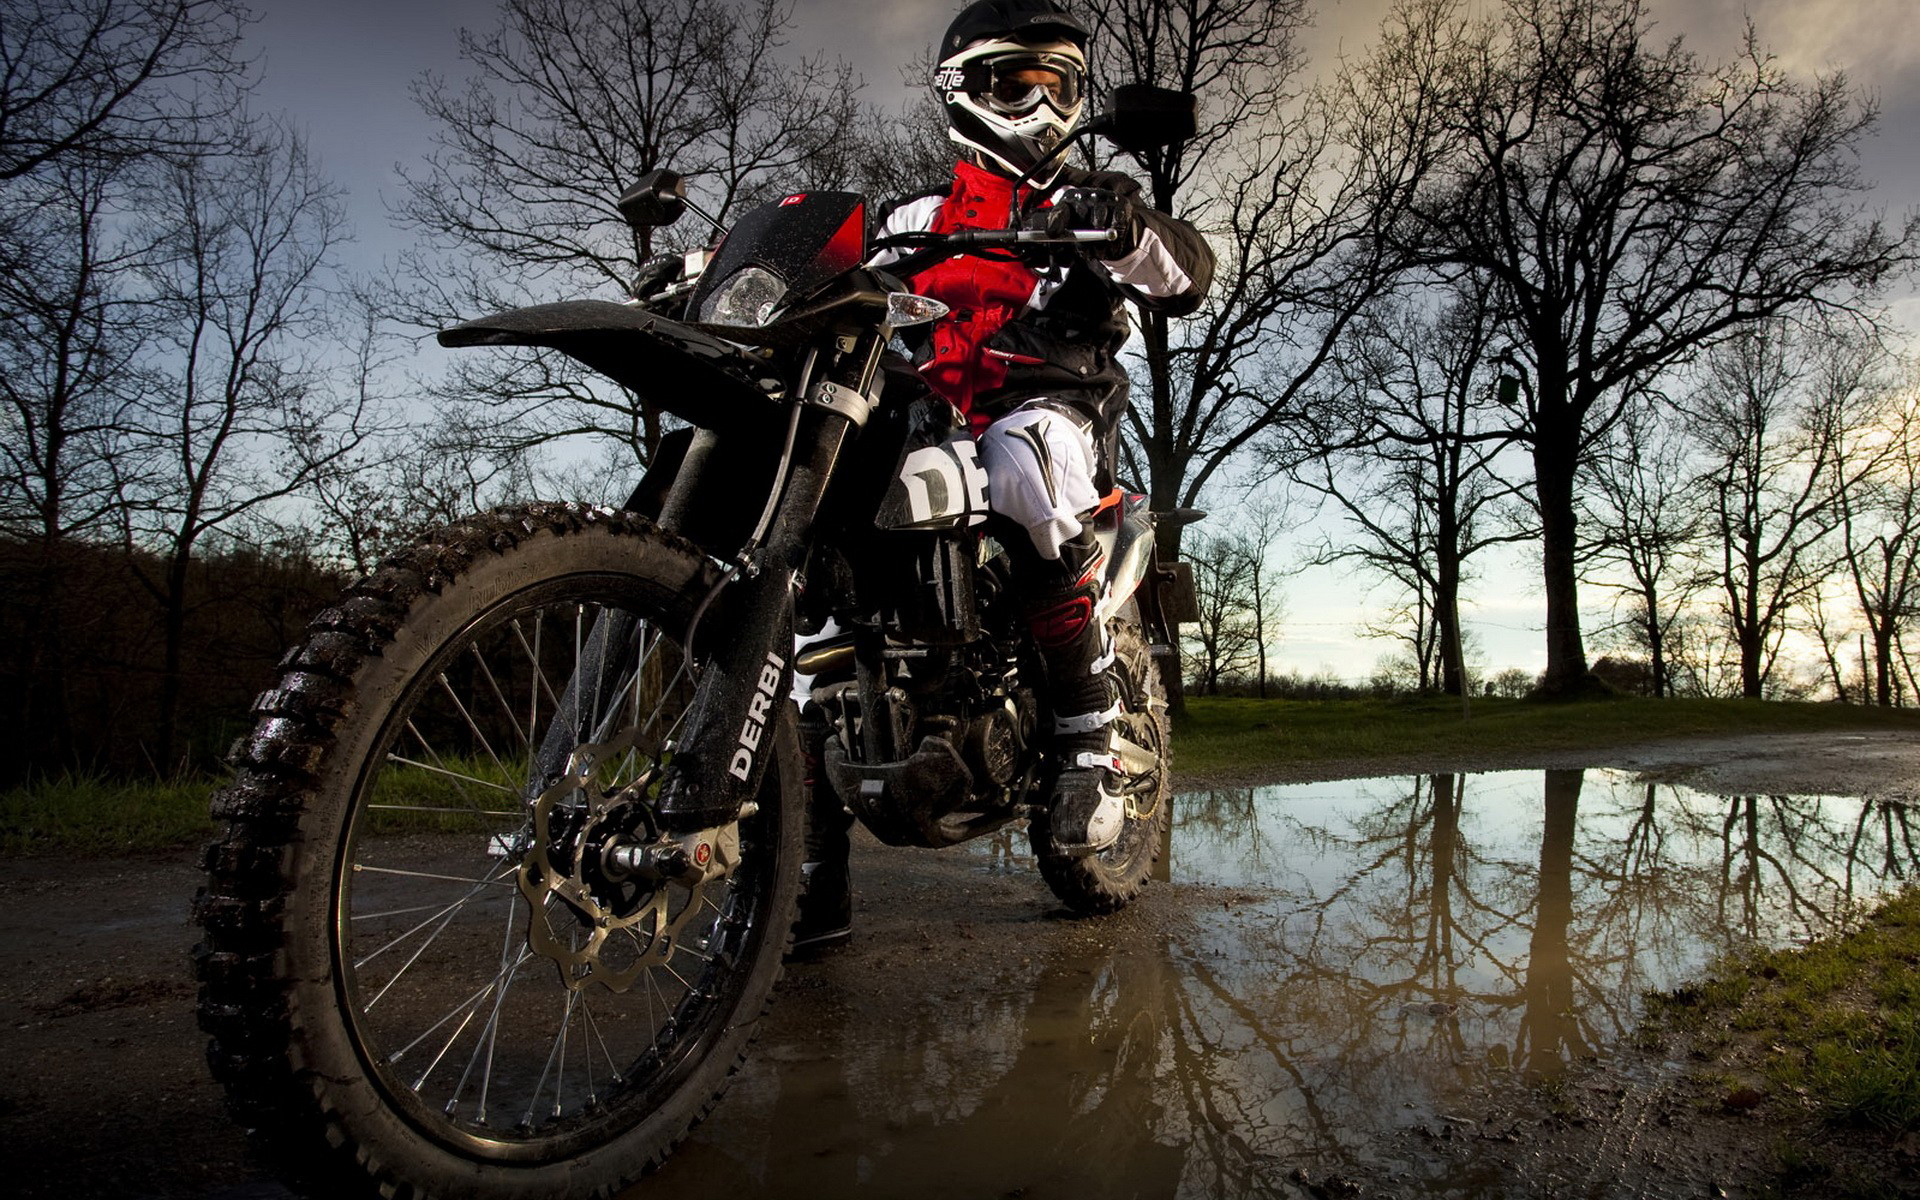 104 Motocross HD Wallpapers | Backgrounds - Wallpaper Abyss